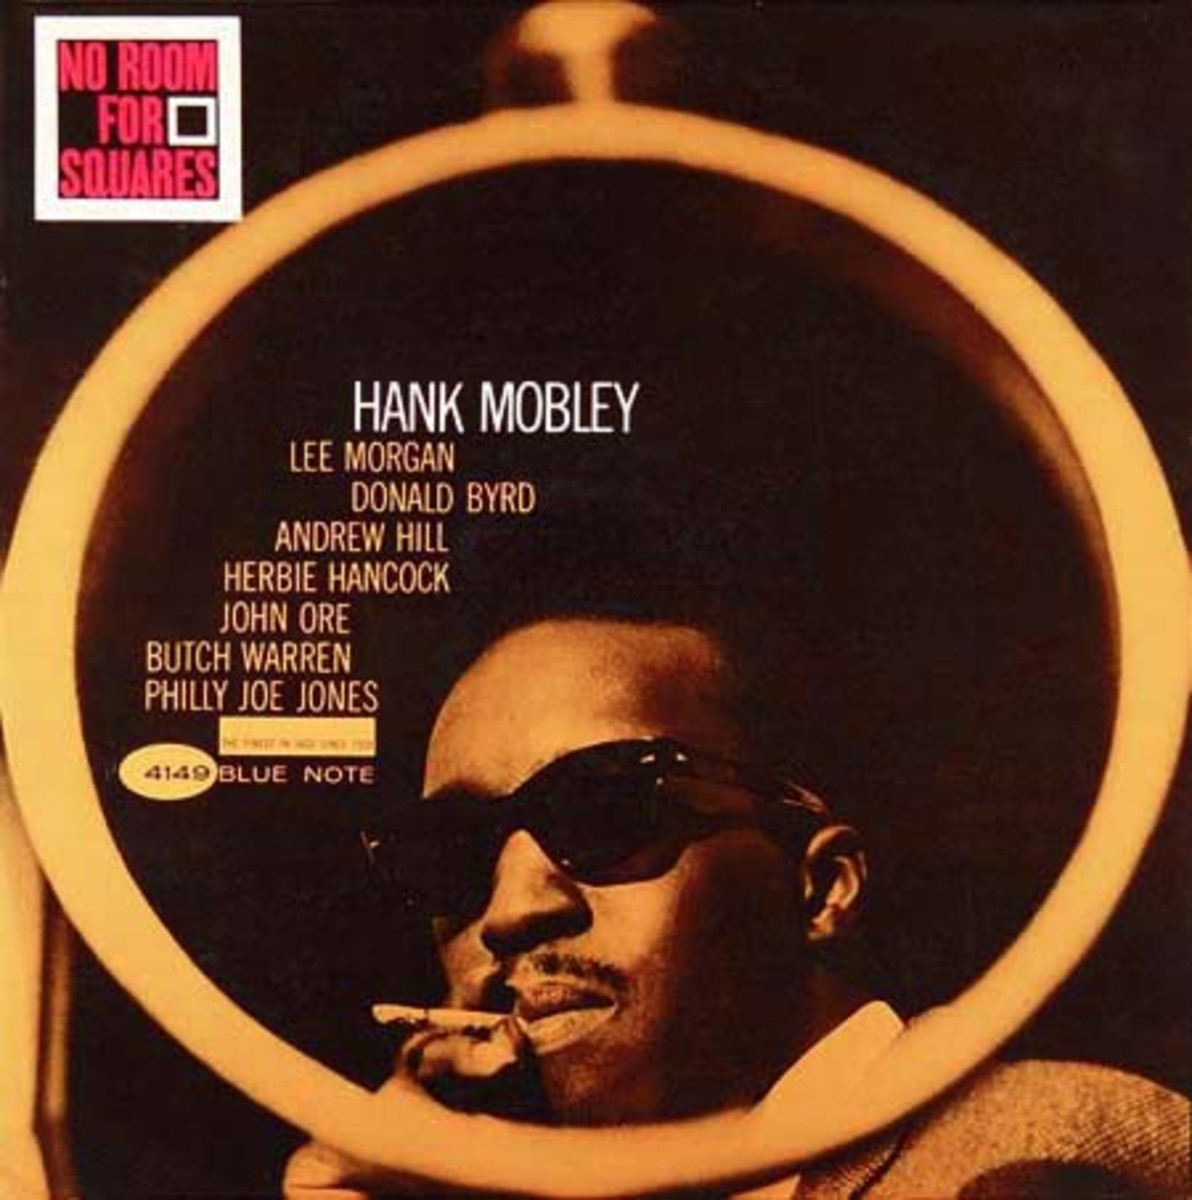 "Hank Mobley ""No Room for Squares"" Blue Note Records 4149 12"" LP Vinyl Record (1963) Album Cover Design by Reid Miles, Photo by Francis Wolff"